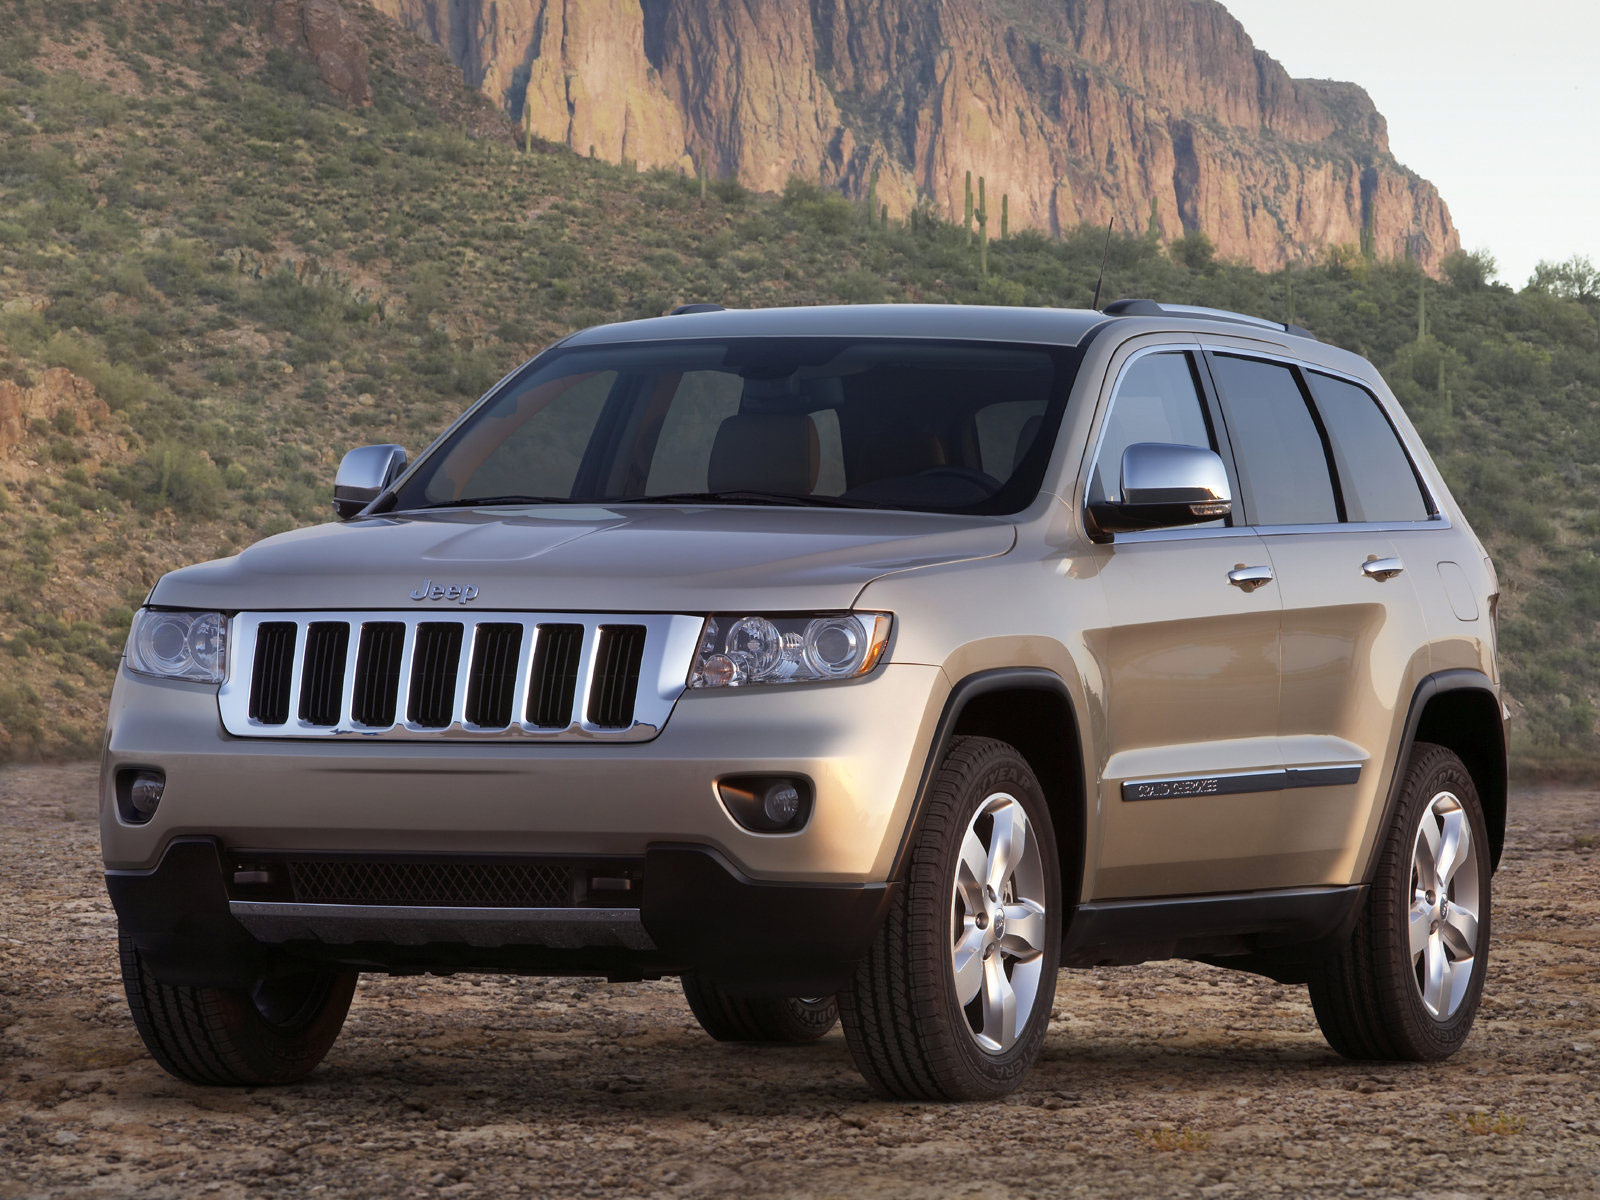 download gambar mobil jeep grand cherokee 2011. Black Bedroom Furniture Sets. Home Design Ideas